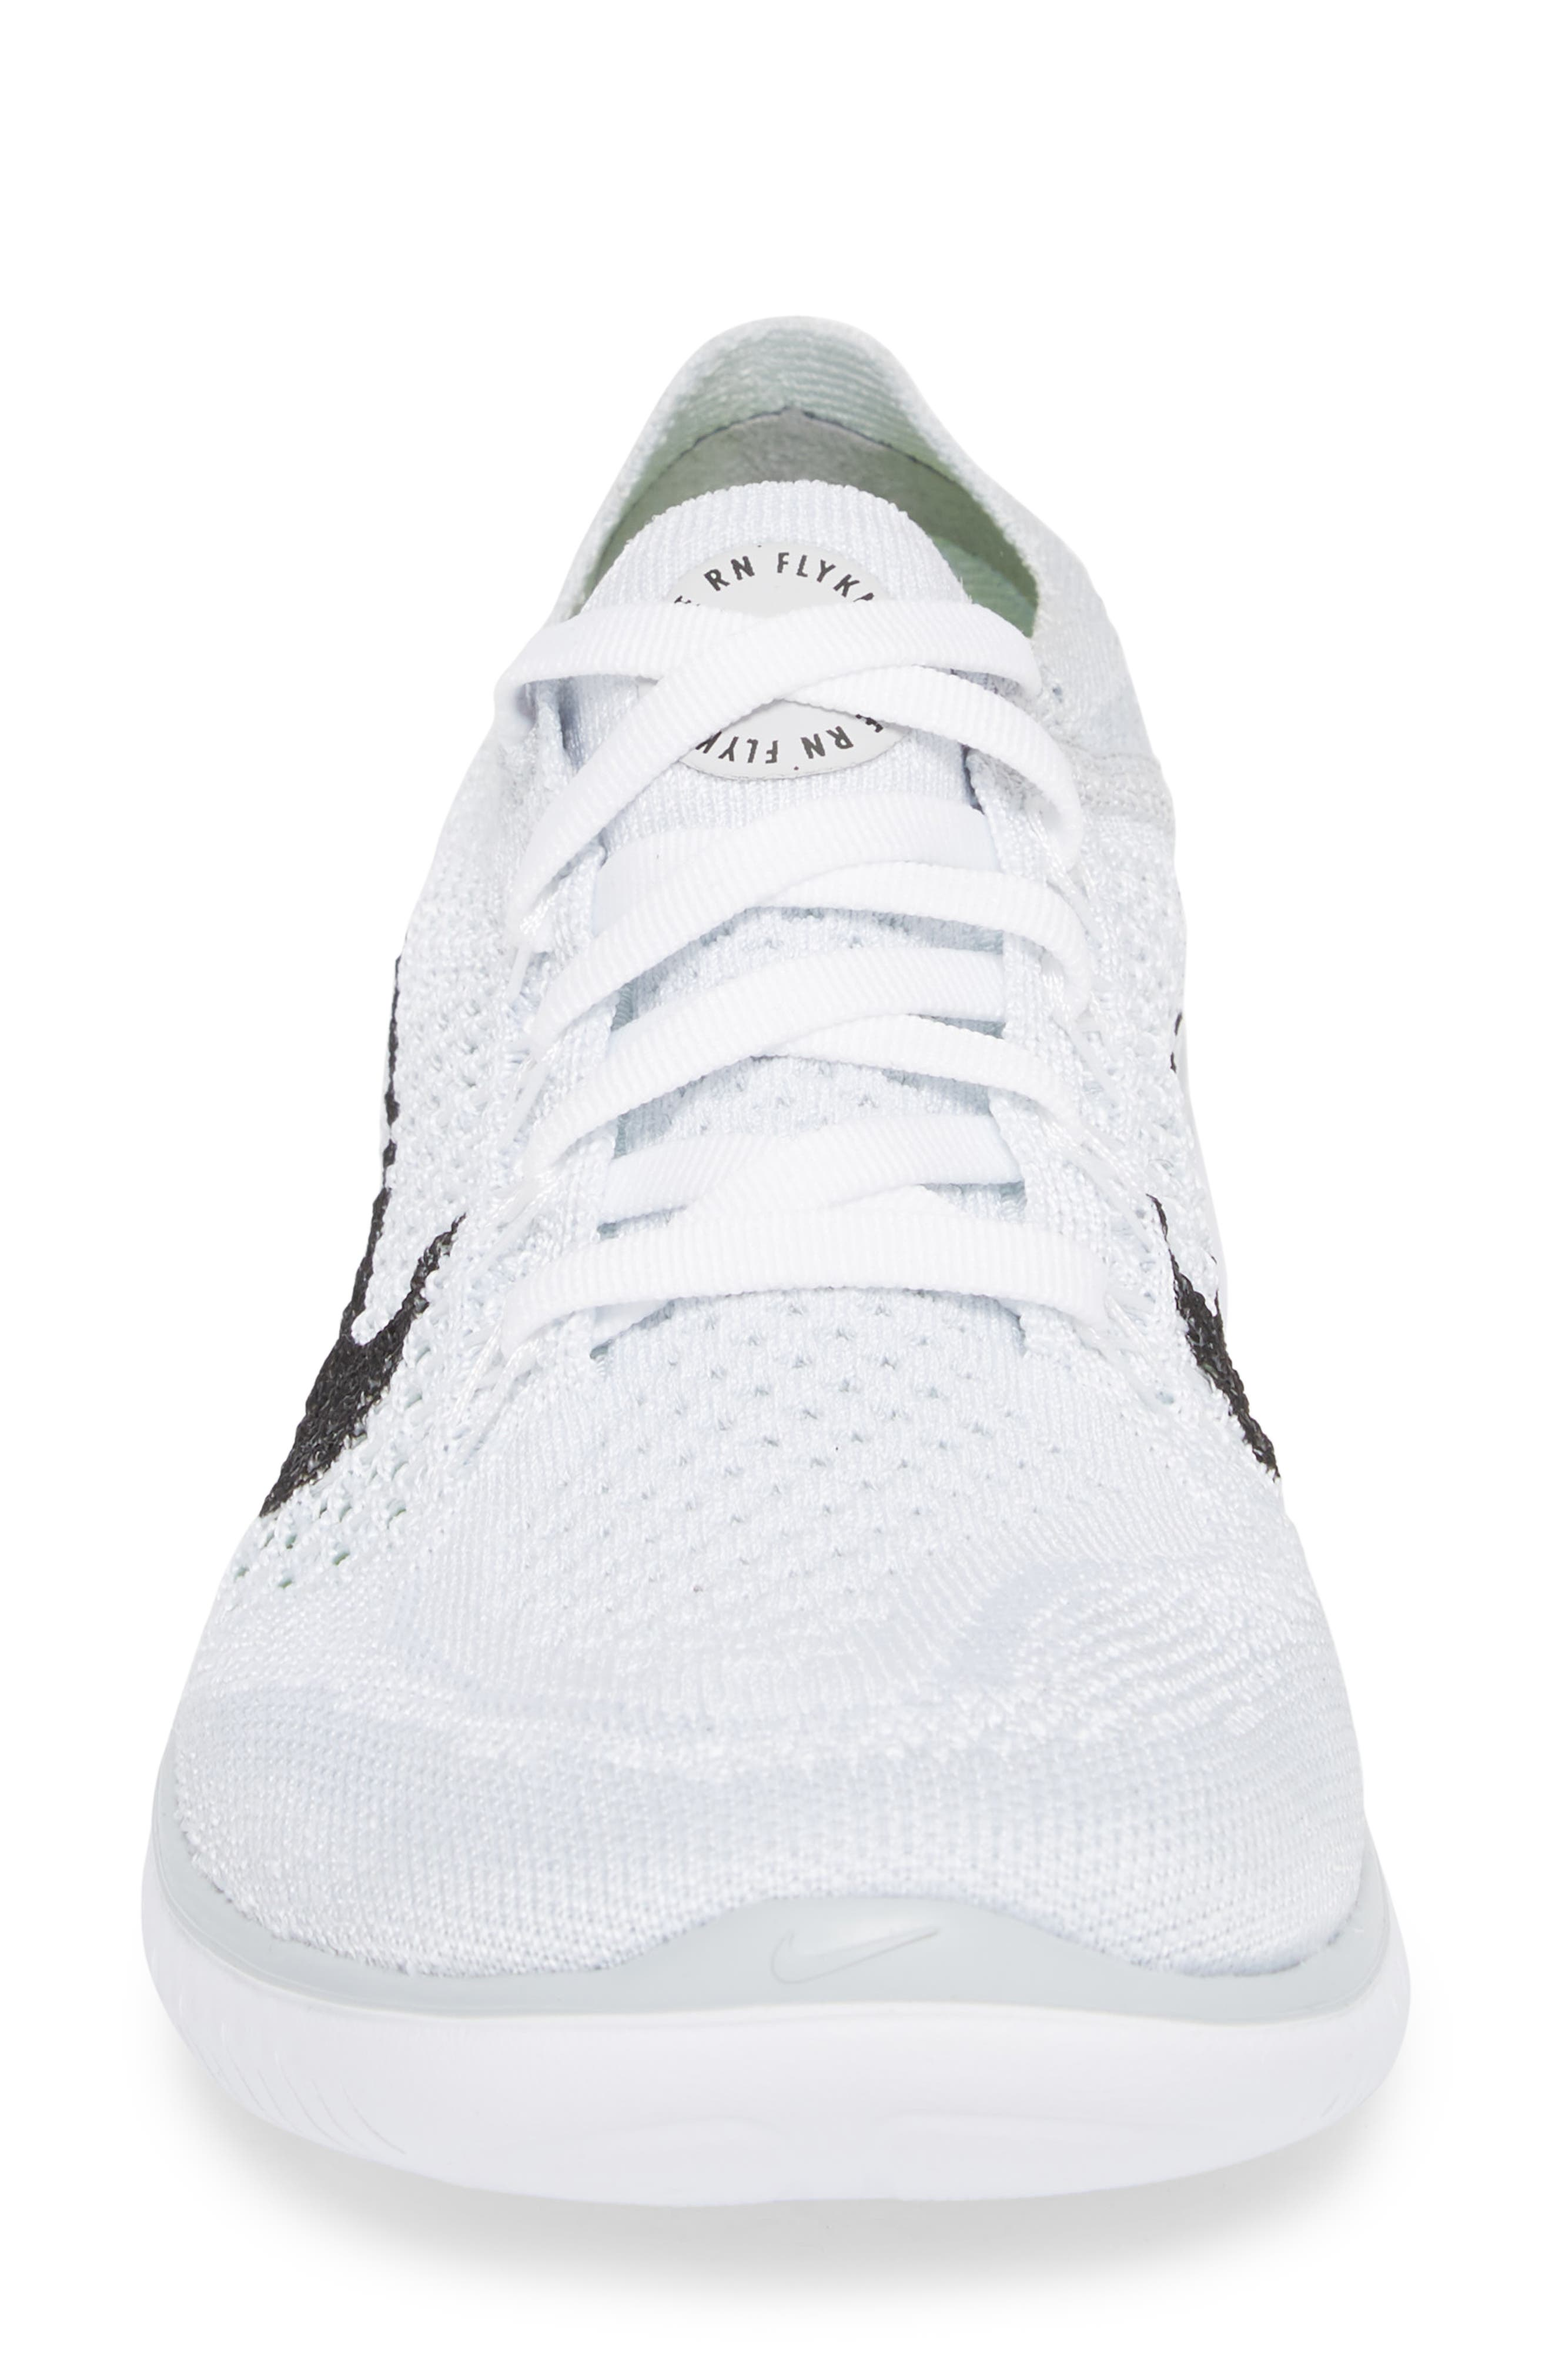 Free RN Flyknit 2018 Running Shoe,                             Alternate thumbnail 4, color,                             WHITE/ BLACK/ PURE PLATINUM